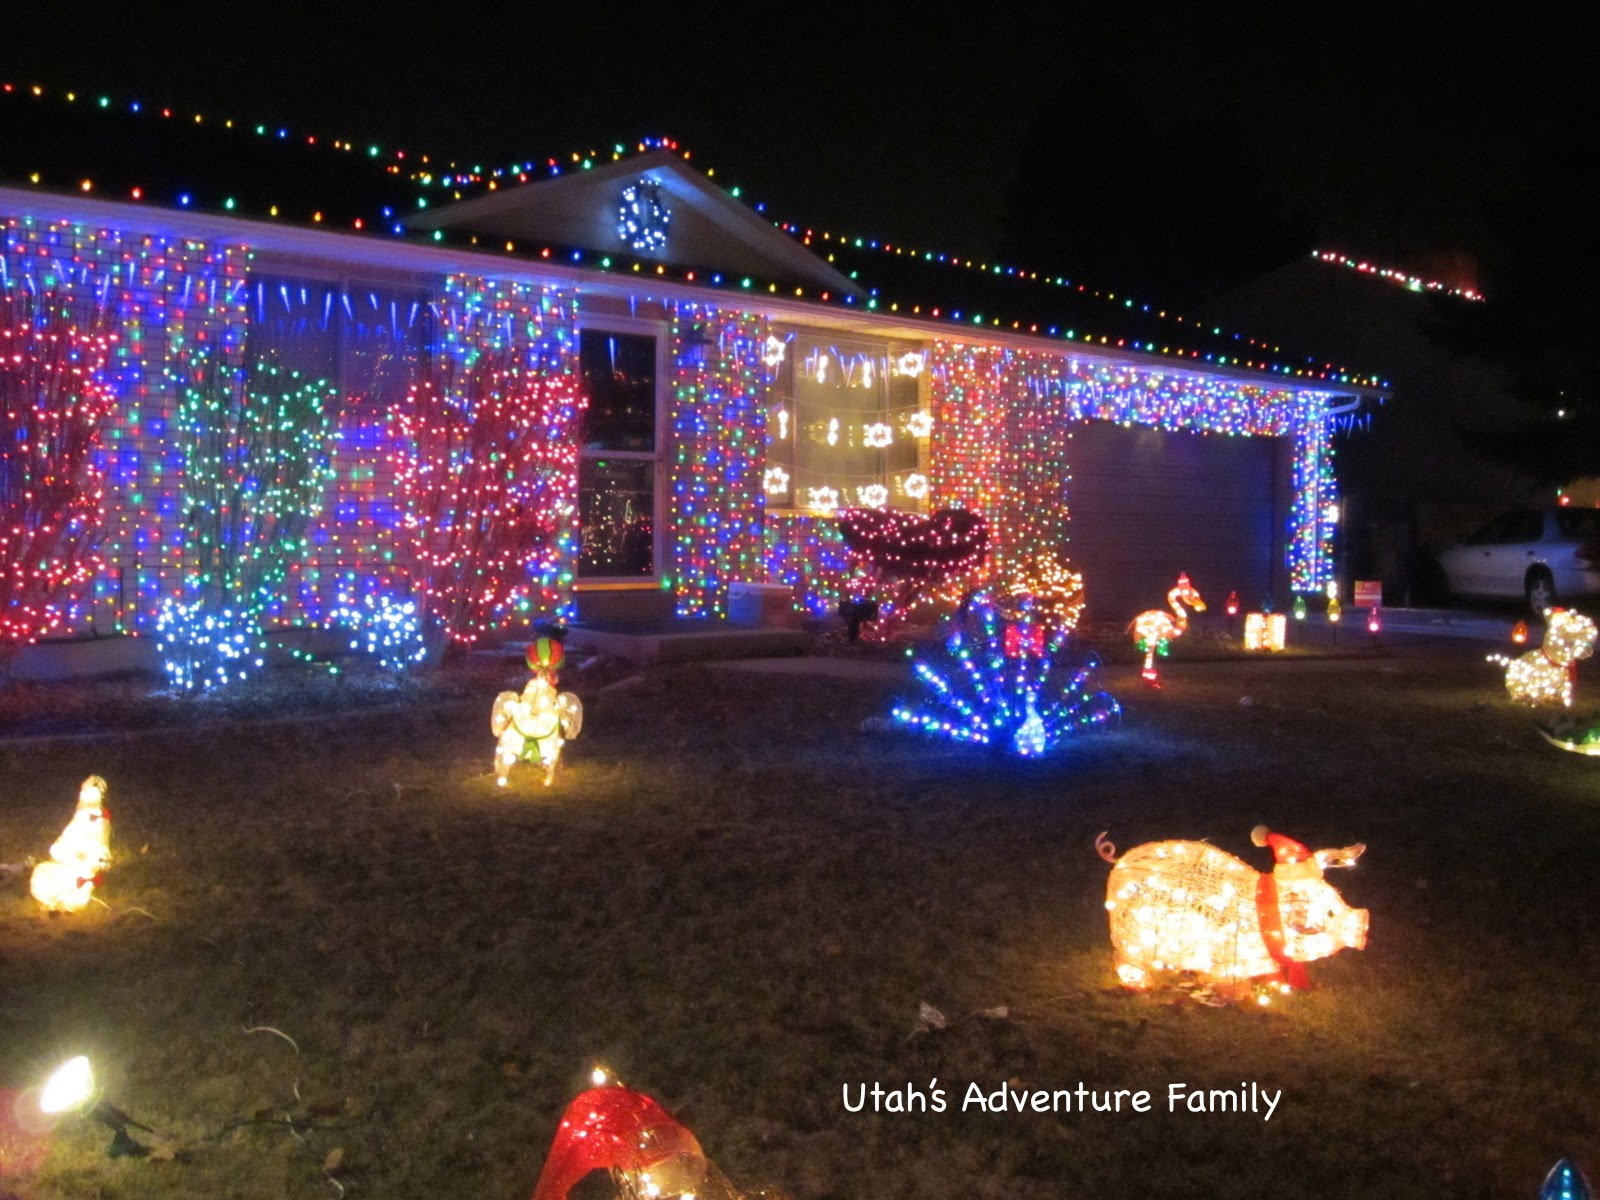 a house with lights set to music